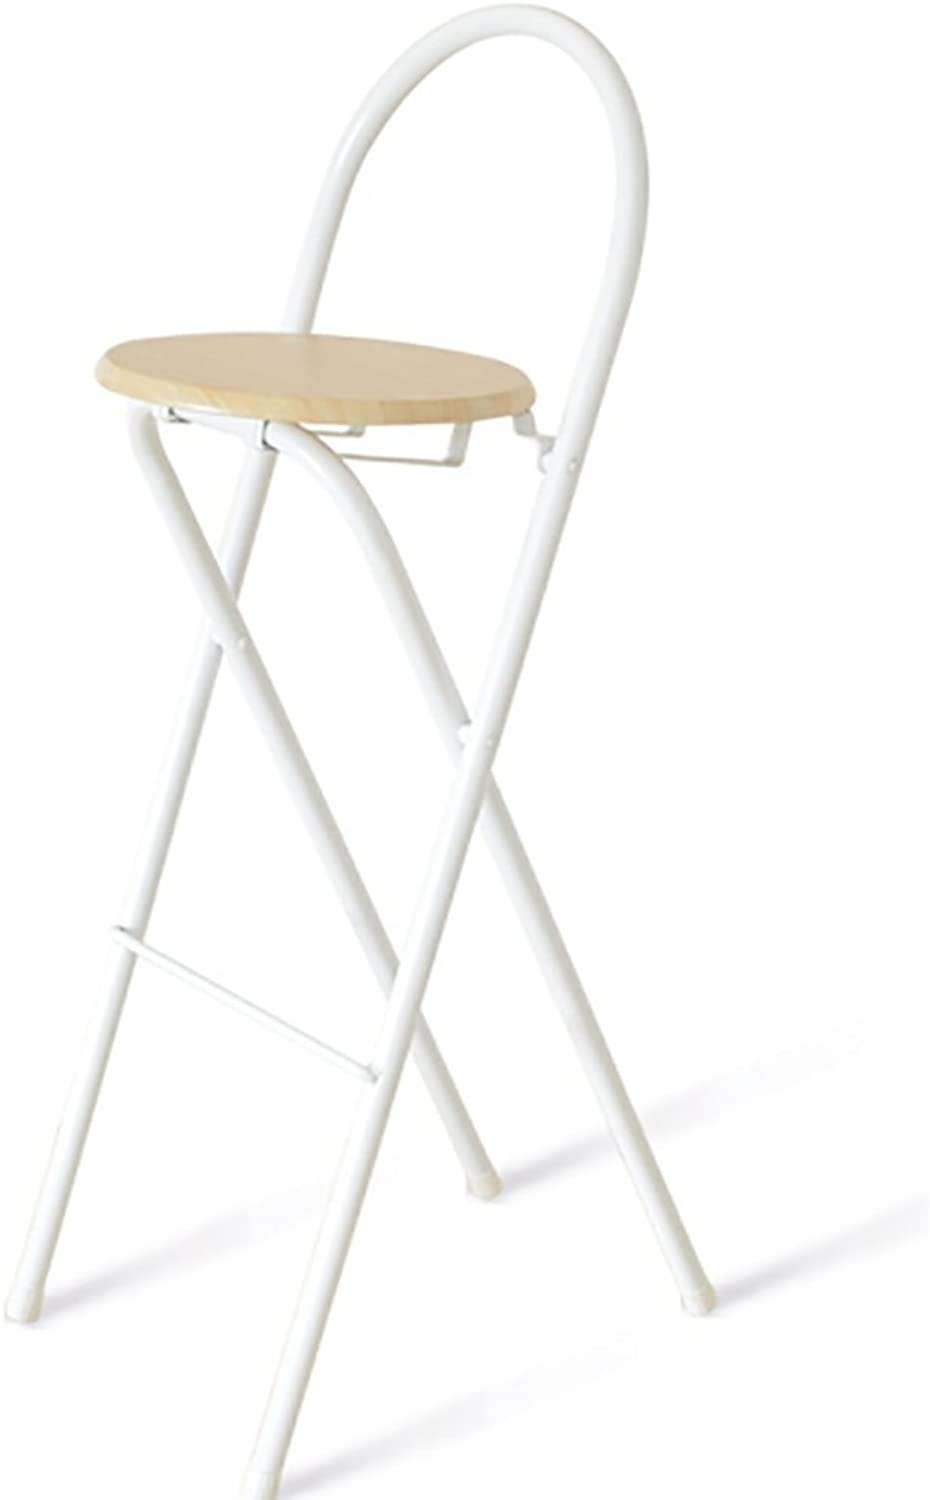 T-Day Barstools Bar stools Industrial Stool Breakfast Stool Folding bar Stool bar Stool bar Stool Modern Home Iron high Stool (color   White)